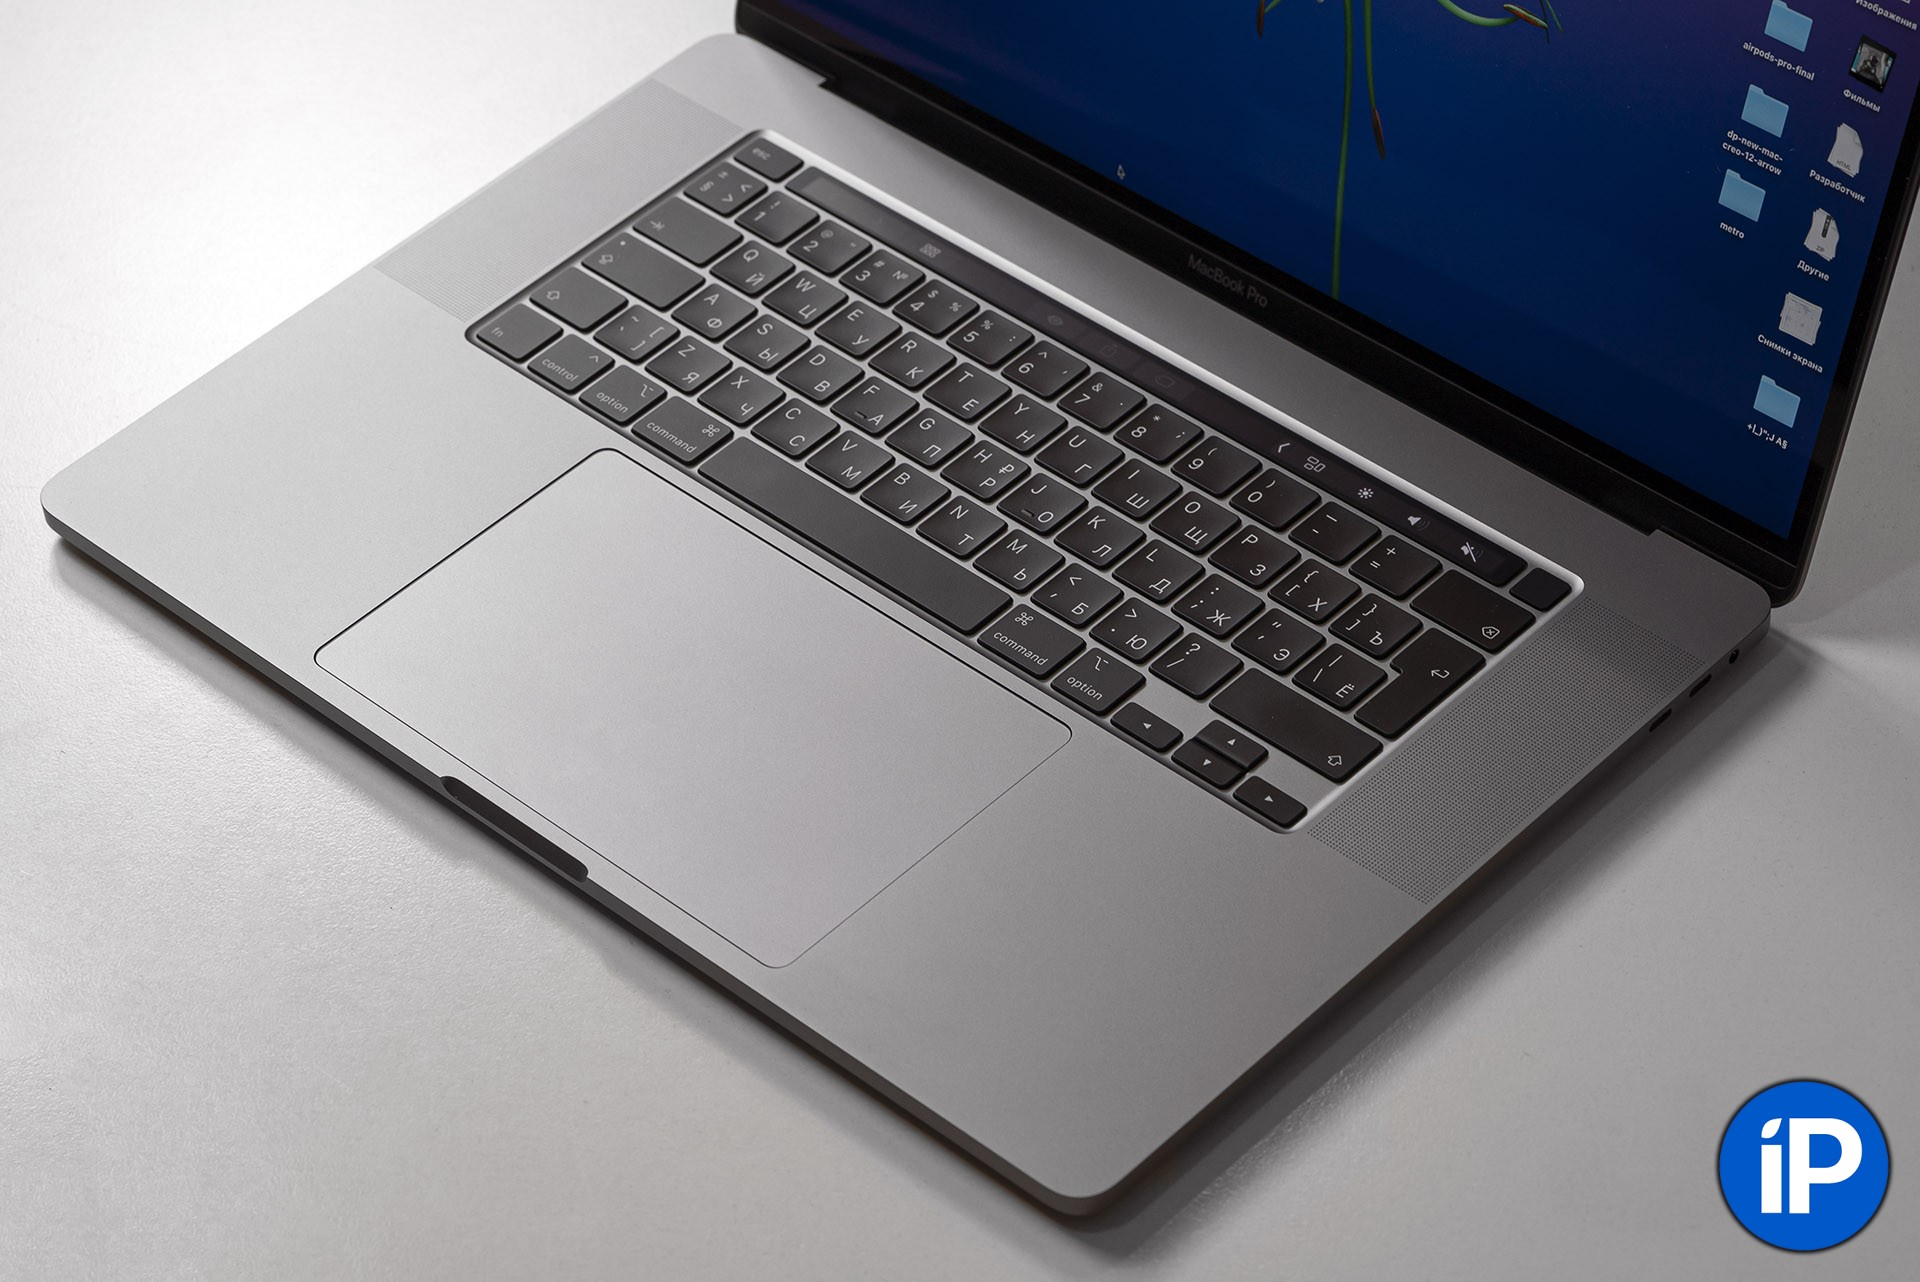 macbook-pro-review-4